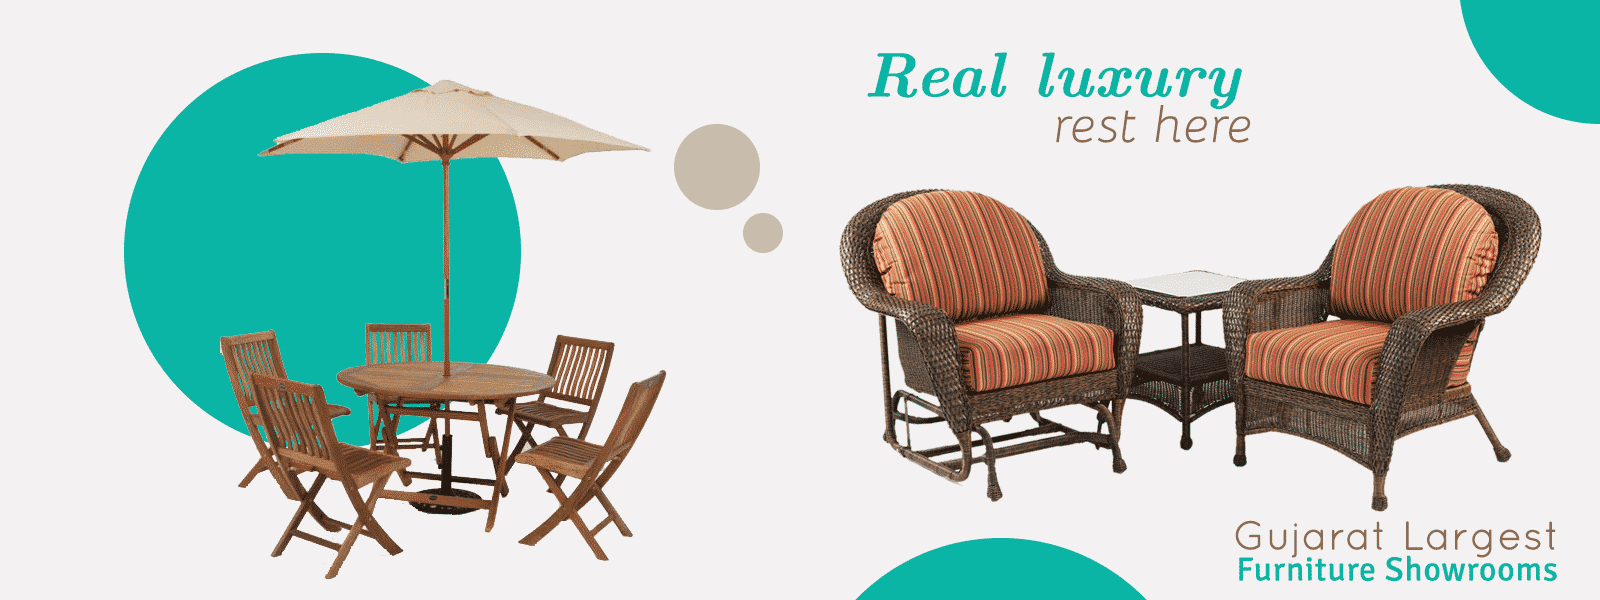 Garden Furniture in Ahmedabad, Outdoor Swing in Ahmedabad, Outdoor Furniture in Ahmedabad